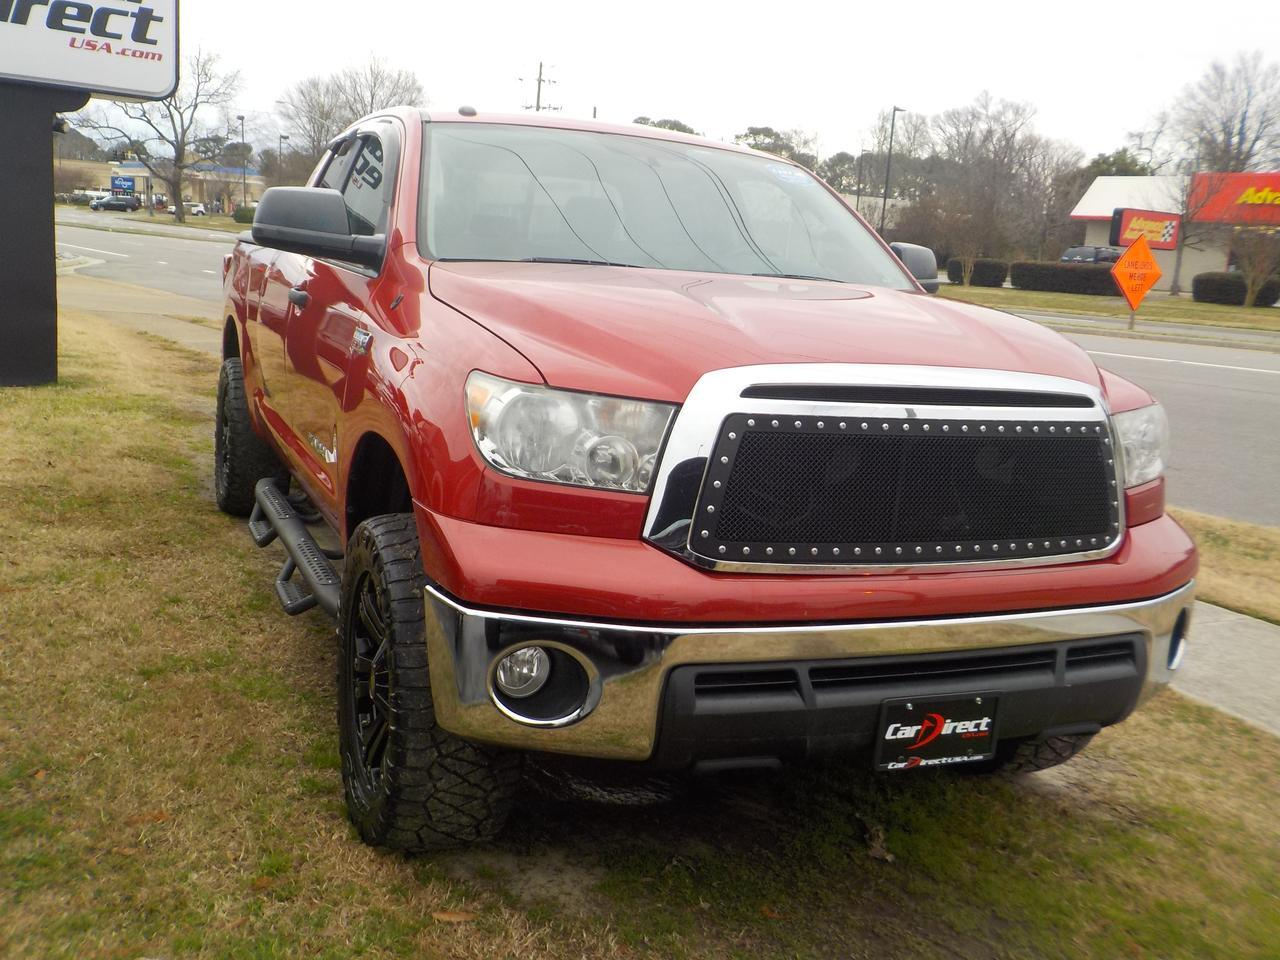 2011 TOYOTA TUNDRA DOUBLE CAB TRD OFF ROAD SR5 4X4, SD SERIES RIMS, HARD TONNEAU COVER, TOW PACKAGE,  ONLY 46K MILES! Virginia Beach VA